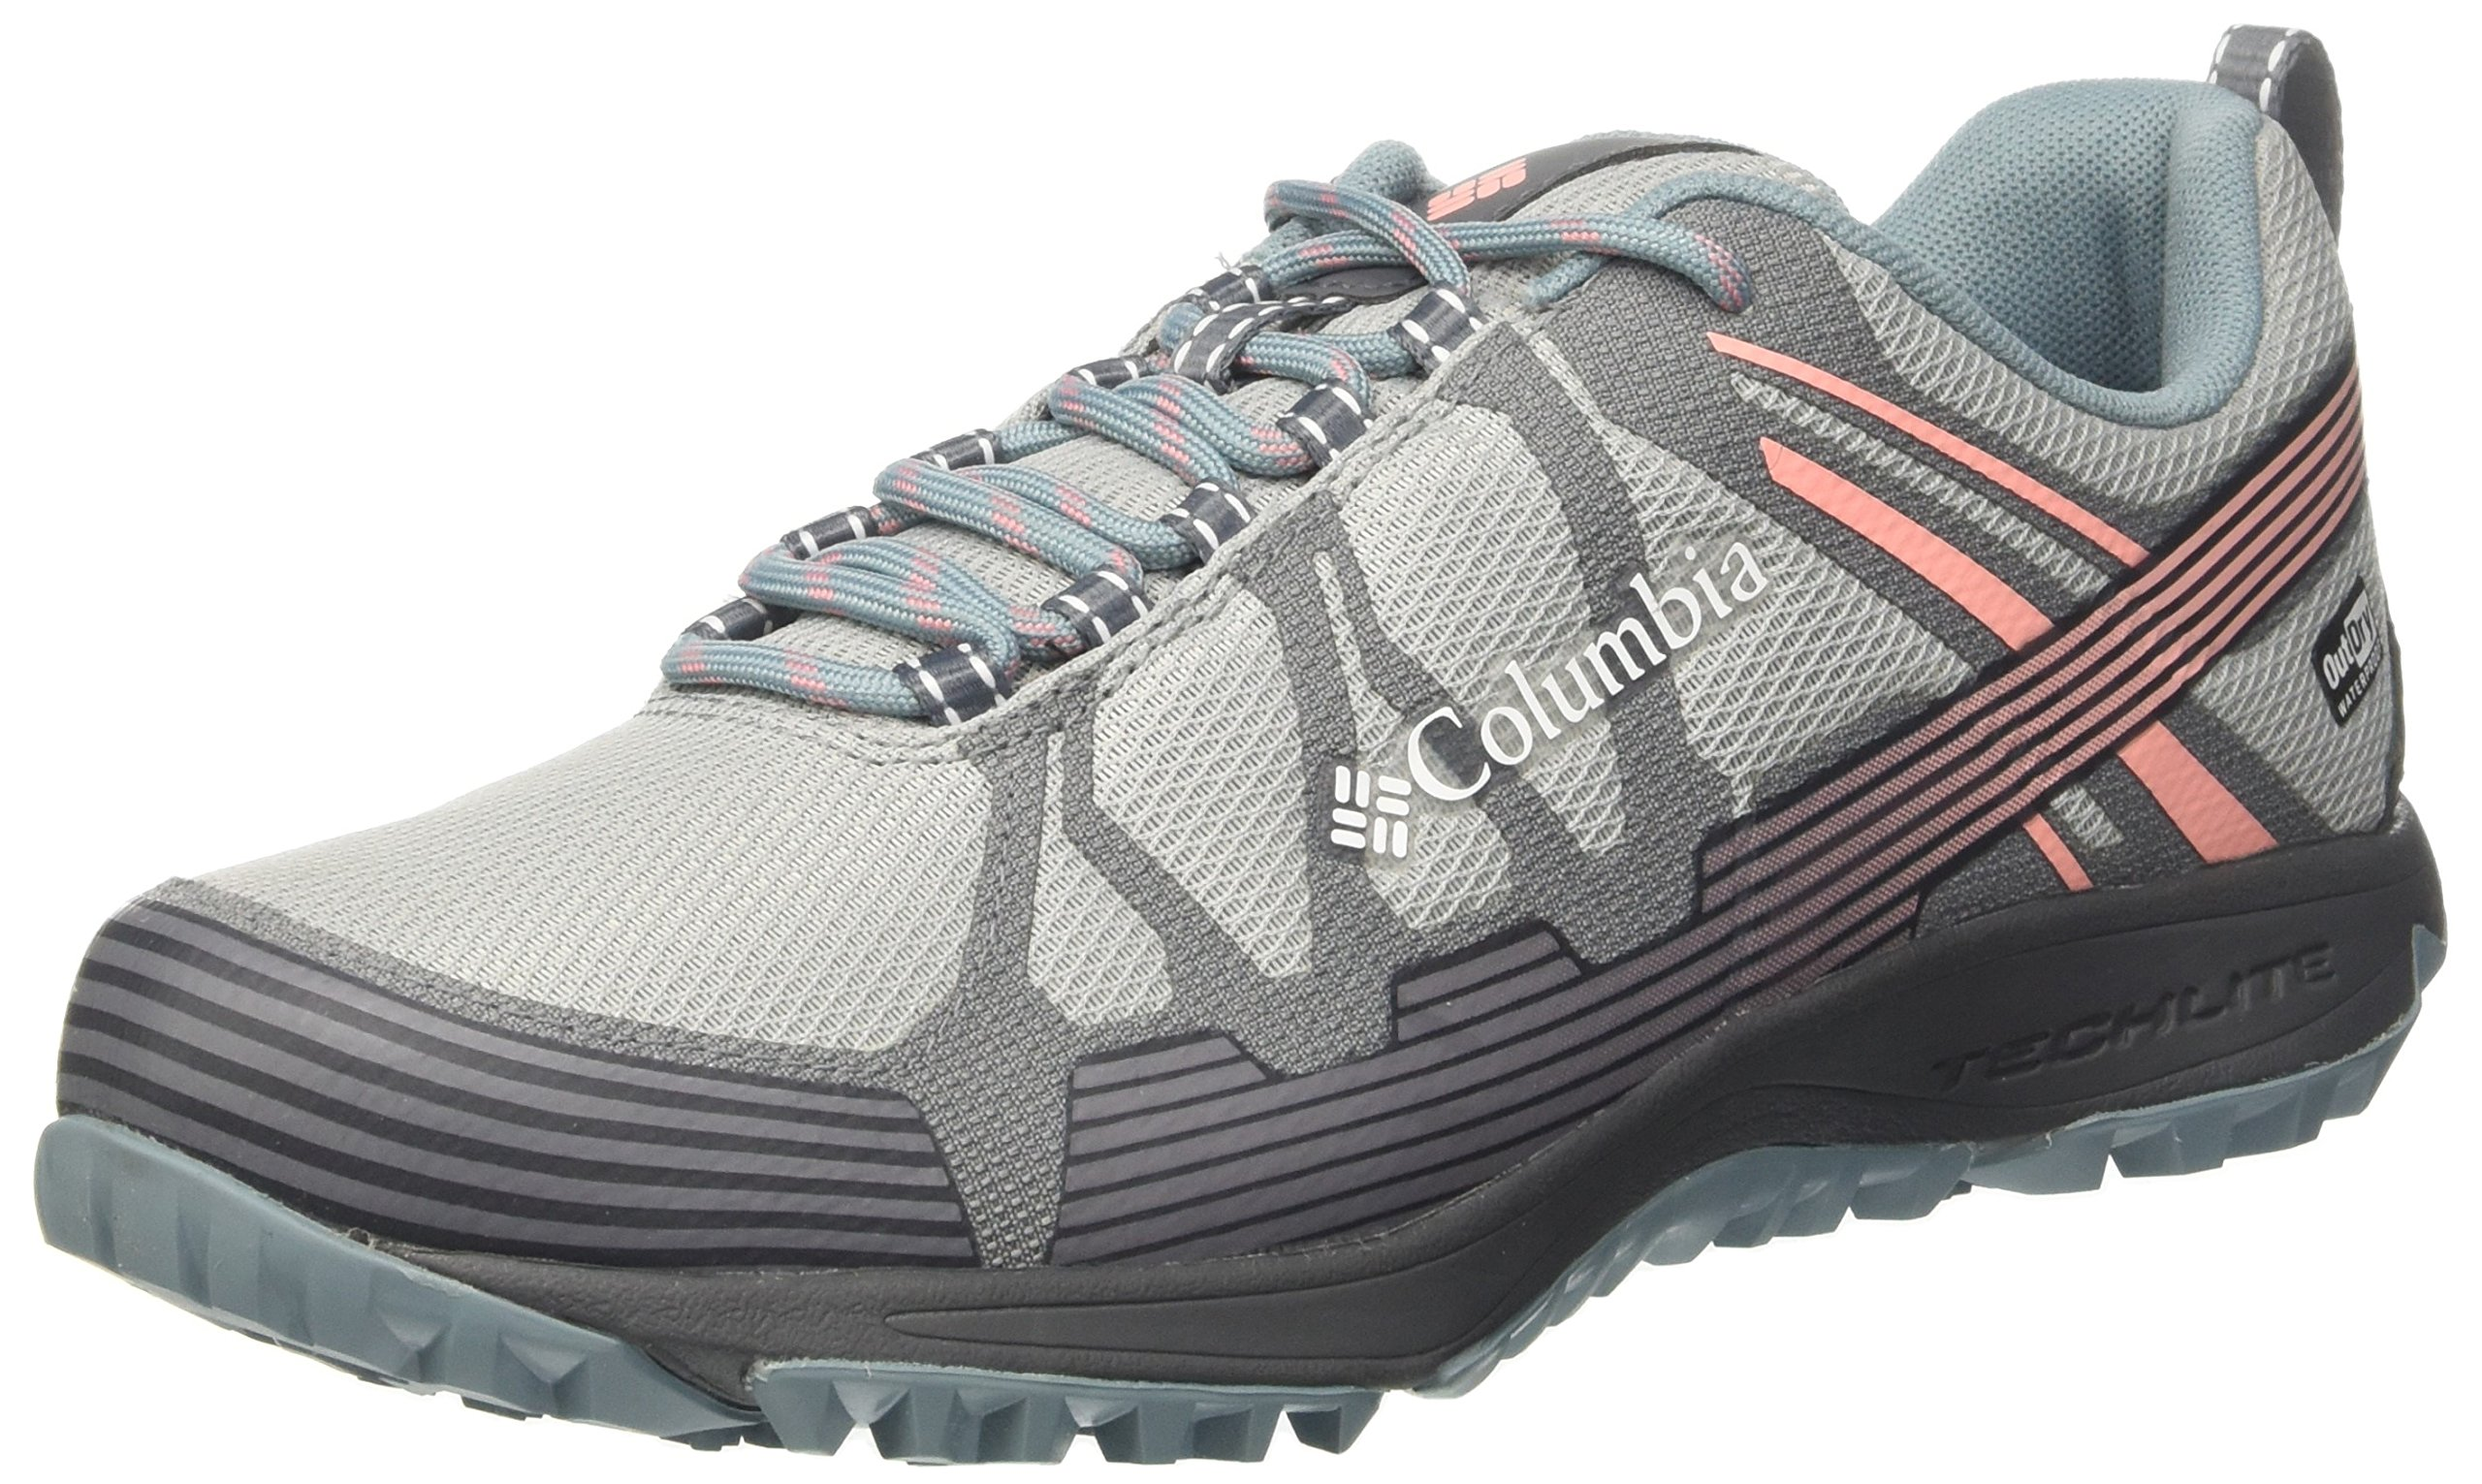 Chaussures V OutdryTaille 38 Columbia Femme MultisportImperméableConspiracy 5Grisearl GreySorbet sCQtrdxhB